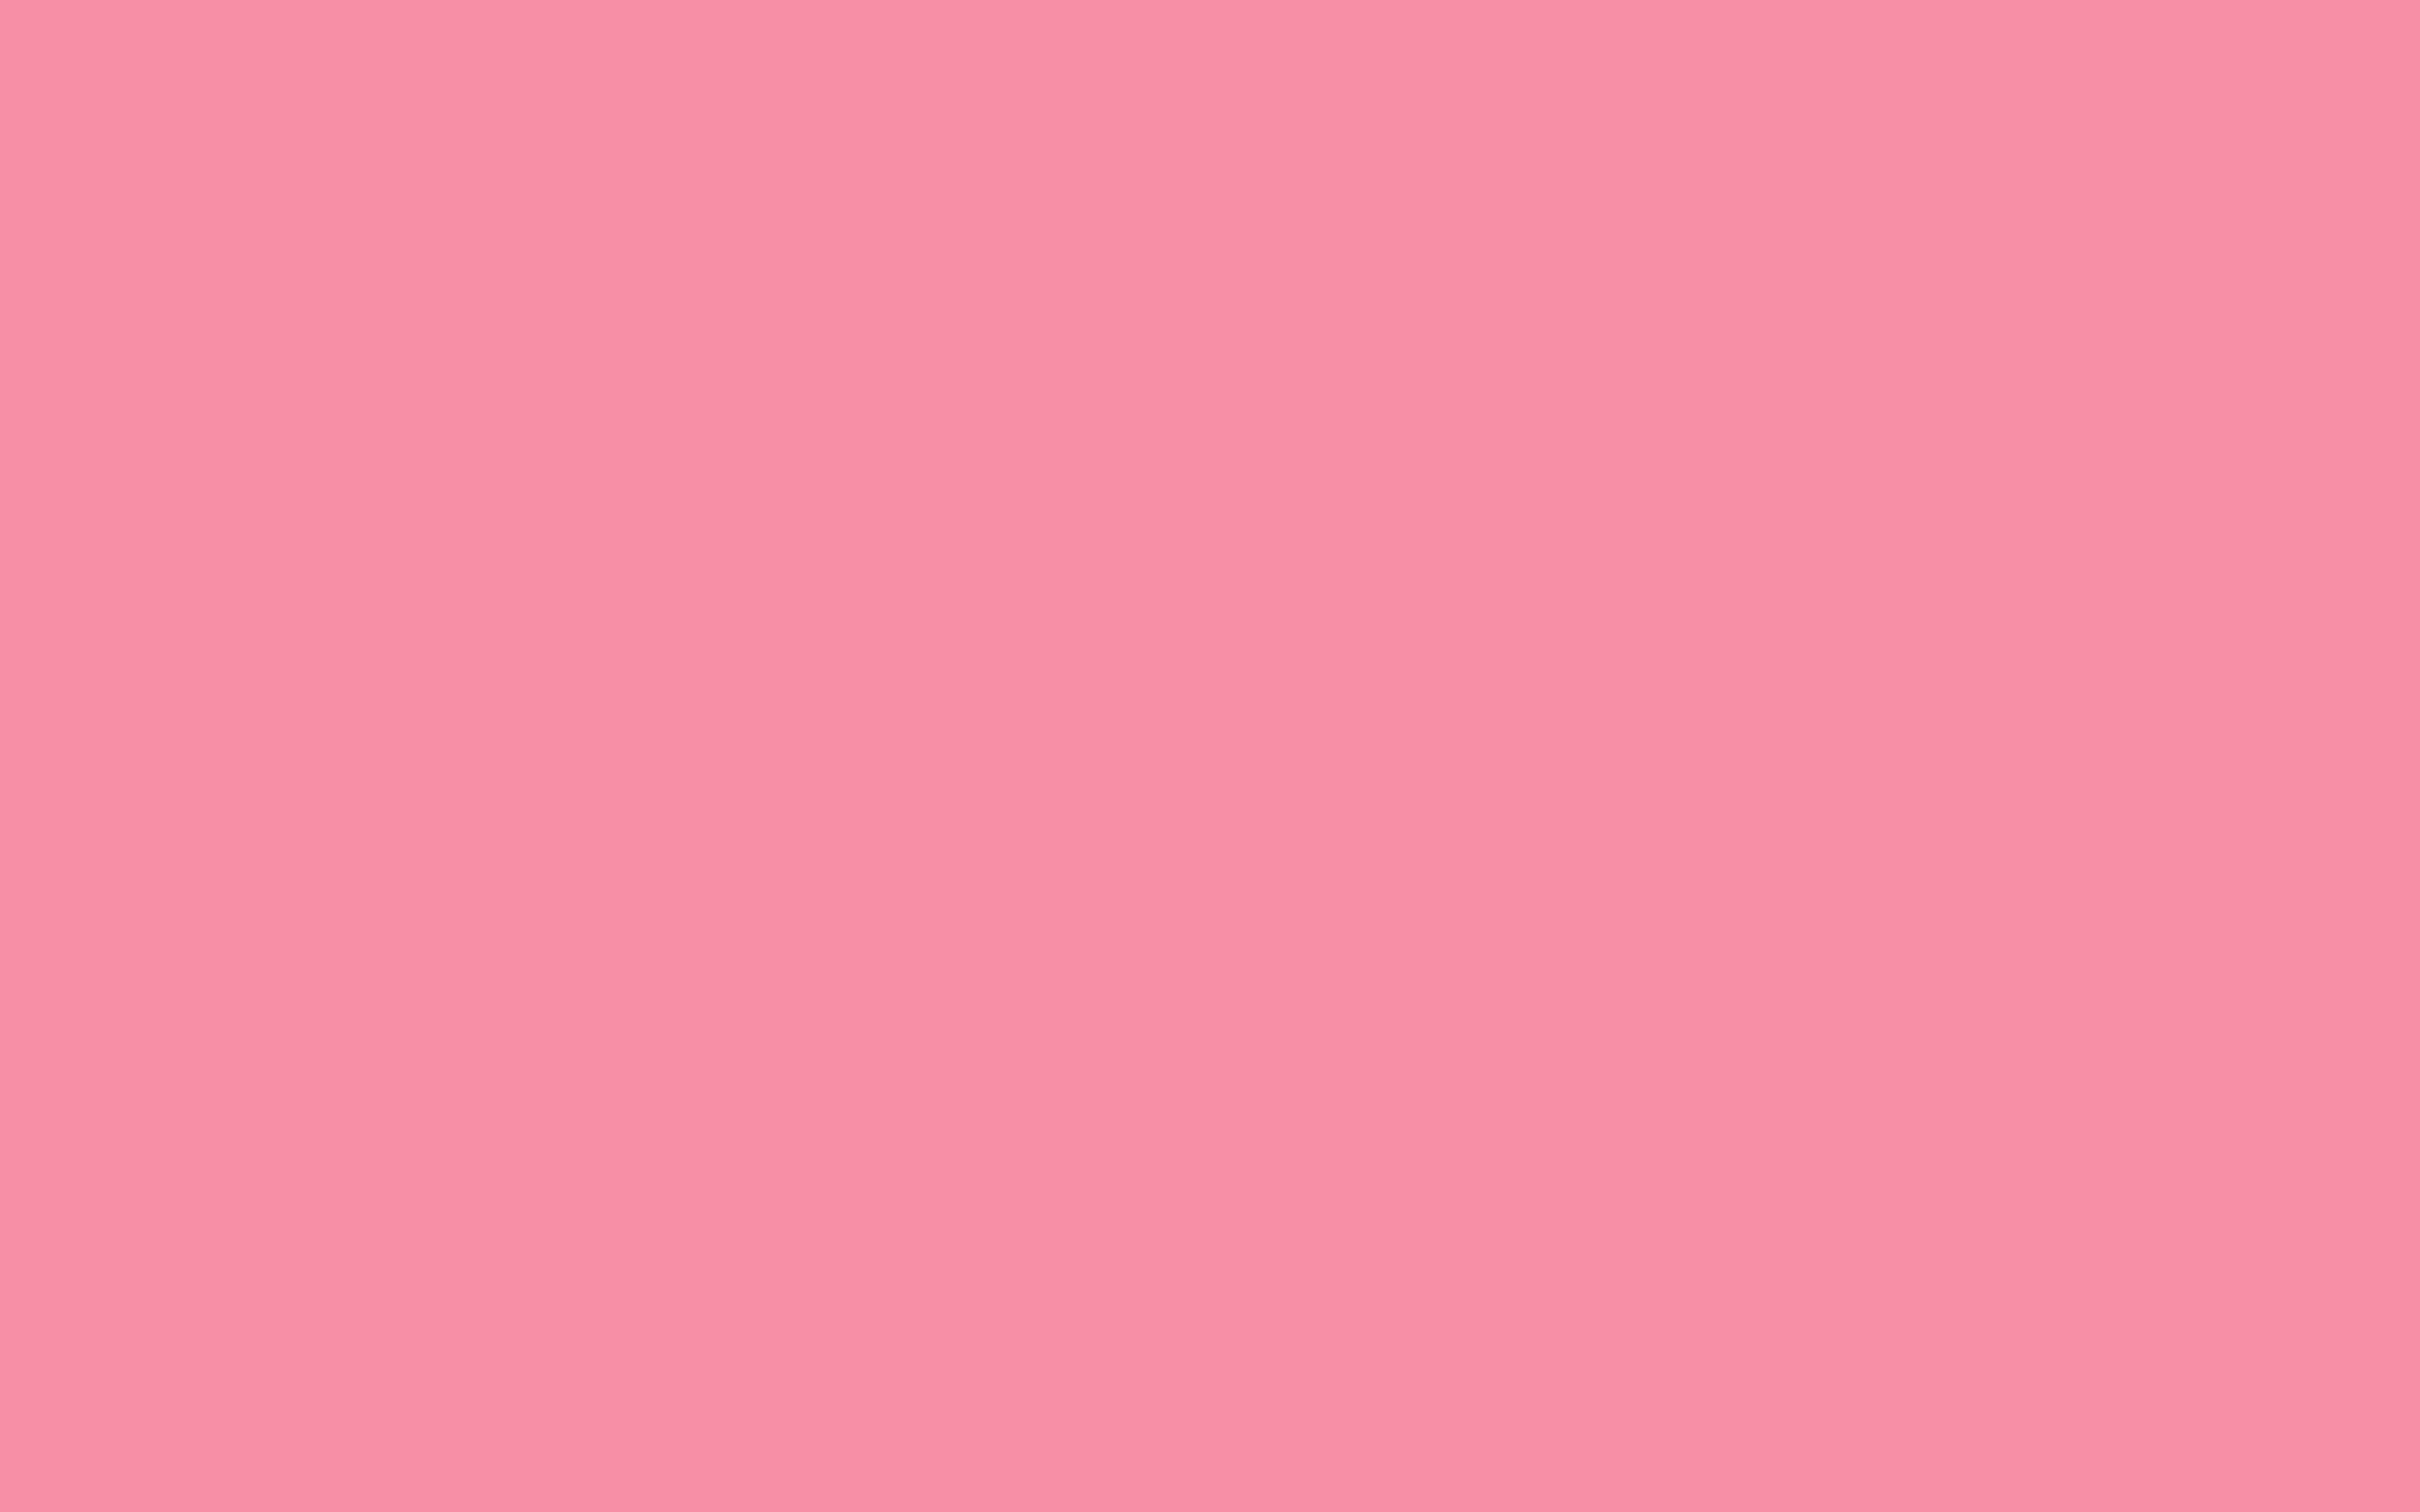 2560x1600 Pink Sherbet Solid Color Background